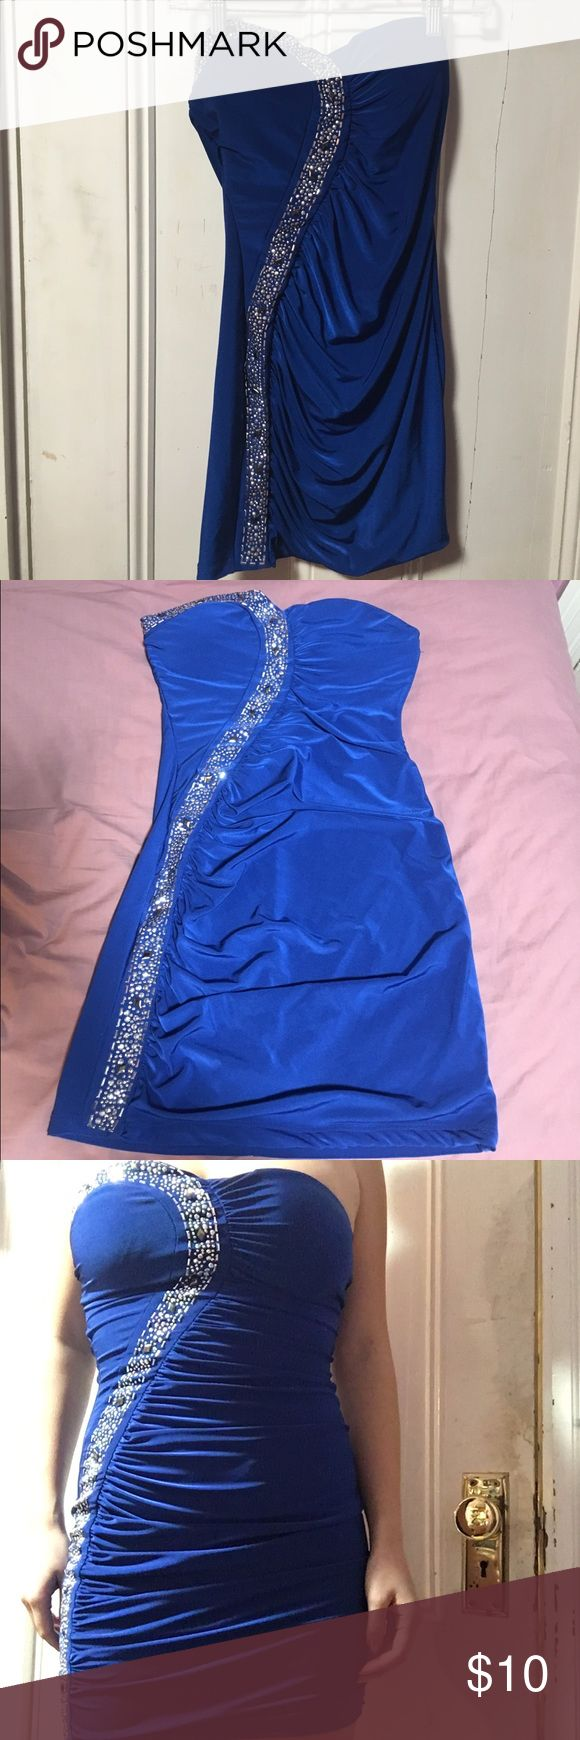 Blue strapless bodycon dress Blue bodycon dress. Light padding, would probably fit smaller busts better. Worn once Charlotte Russe Dresses Strapless